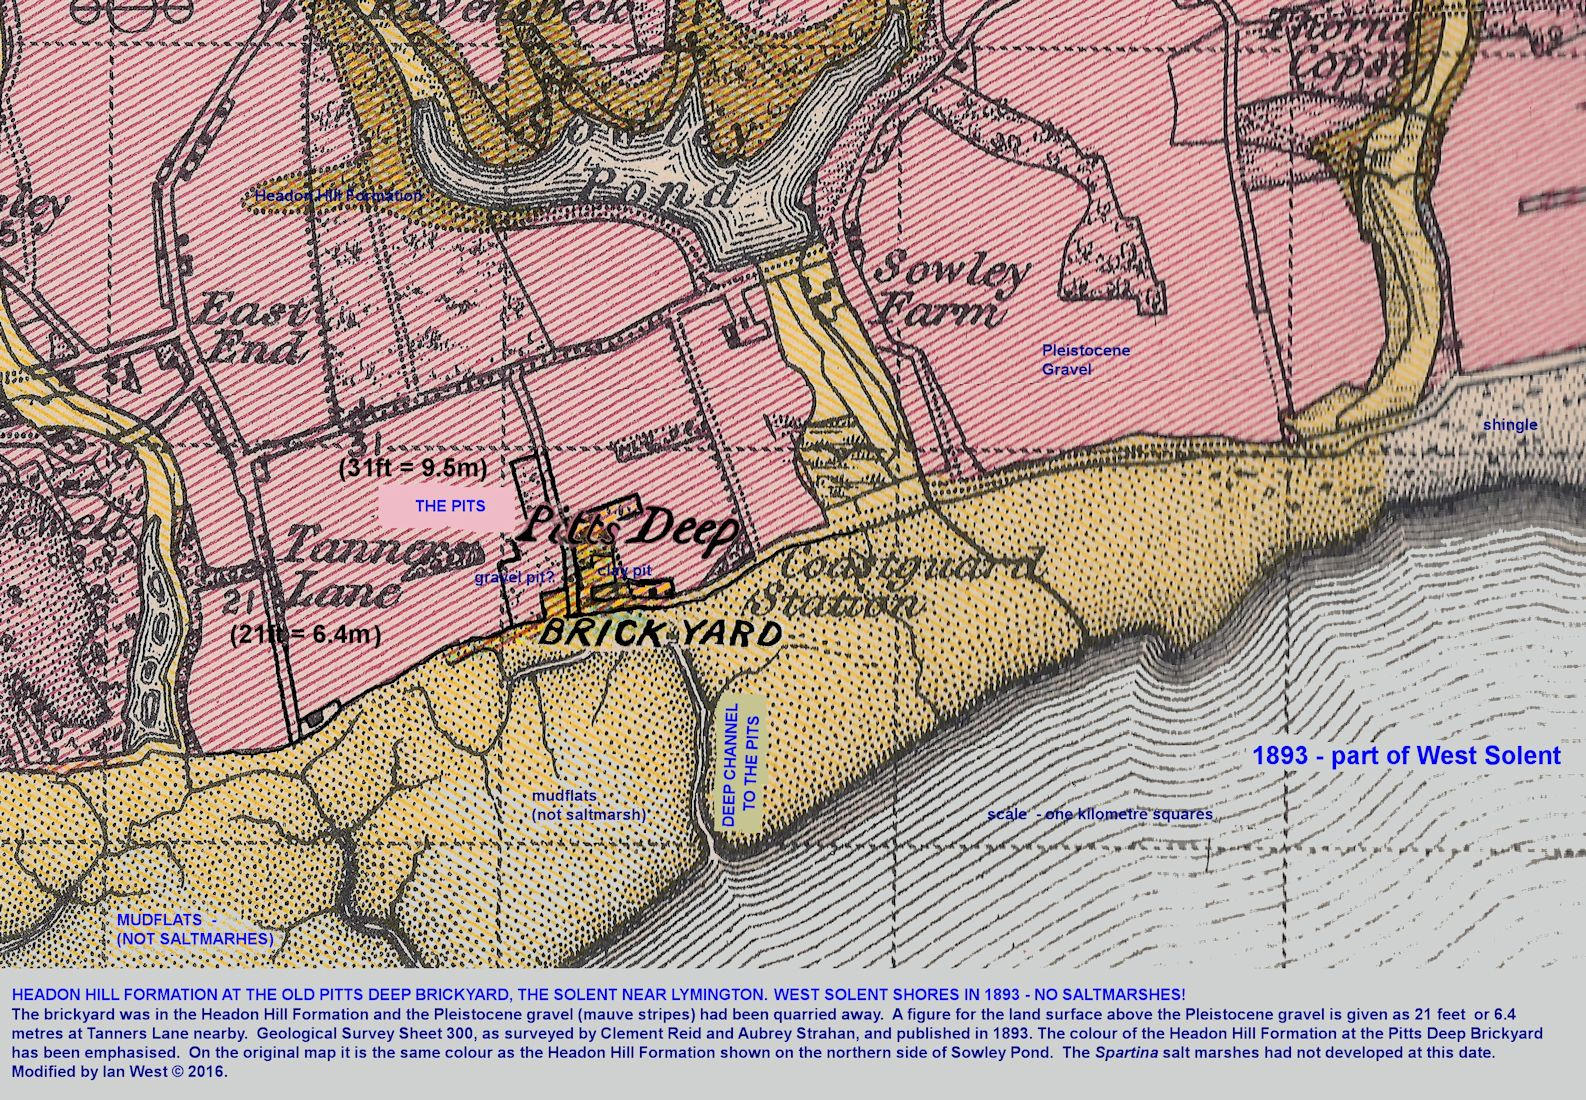 Details of the geology in the area of Pitts Deep, east of the Lymington estuary in the West Solent, southern England, as shown on an old geological map from 1893